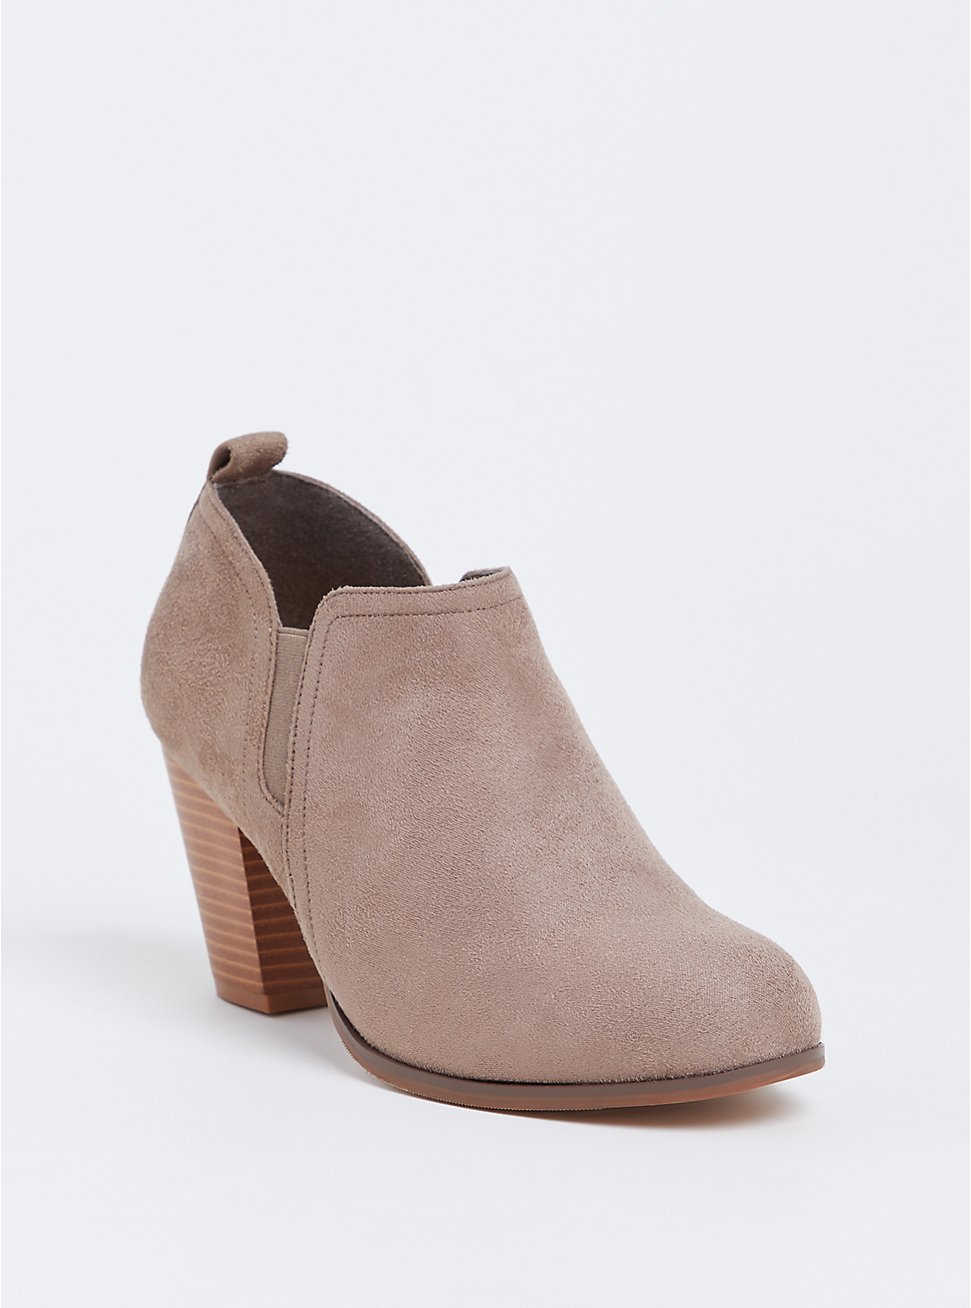 Tan Faux Suede Stacked Heel Bootie (WW), TAN/BEIGE, hi-res